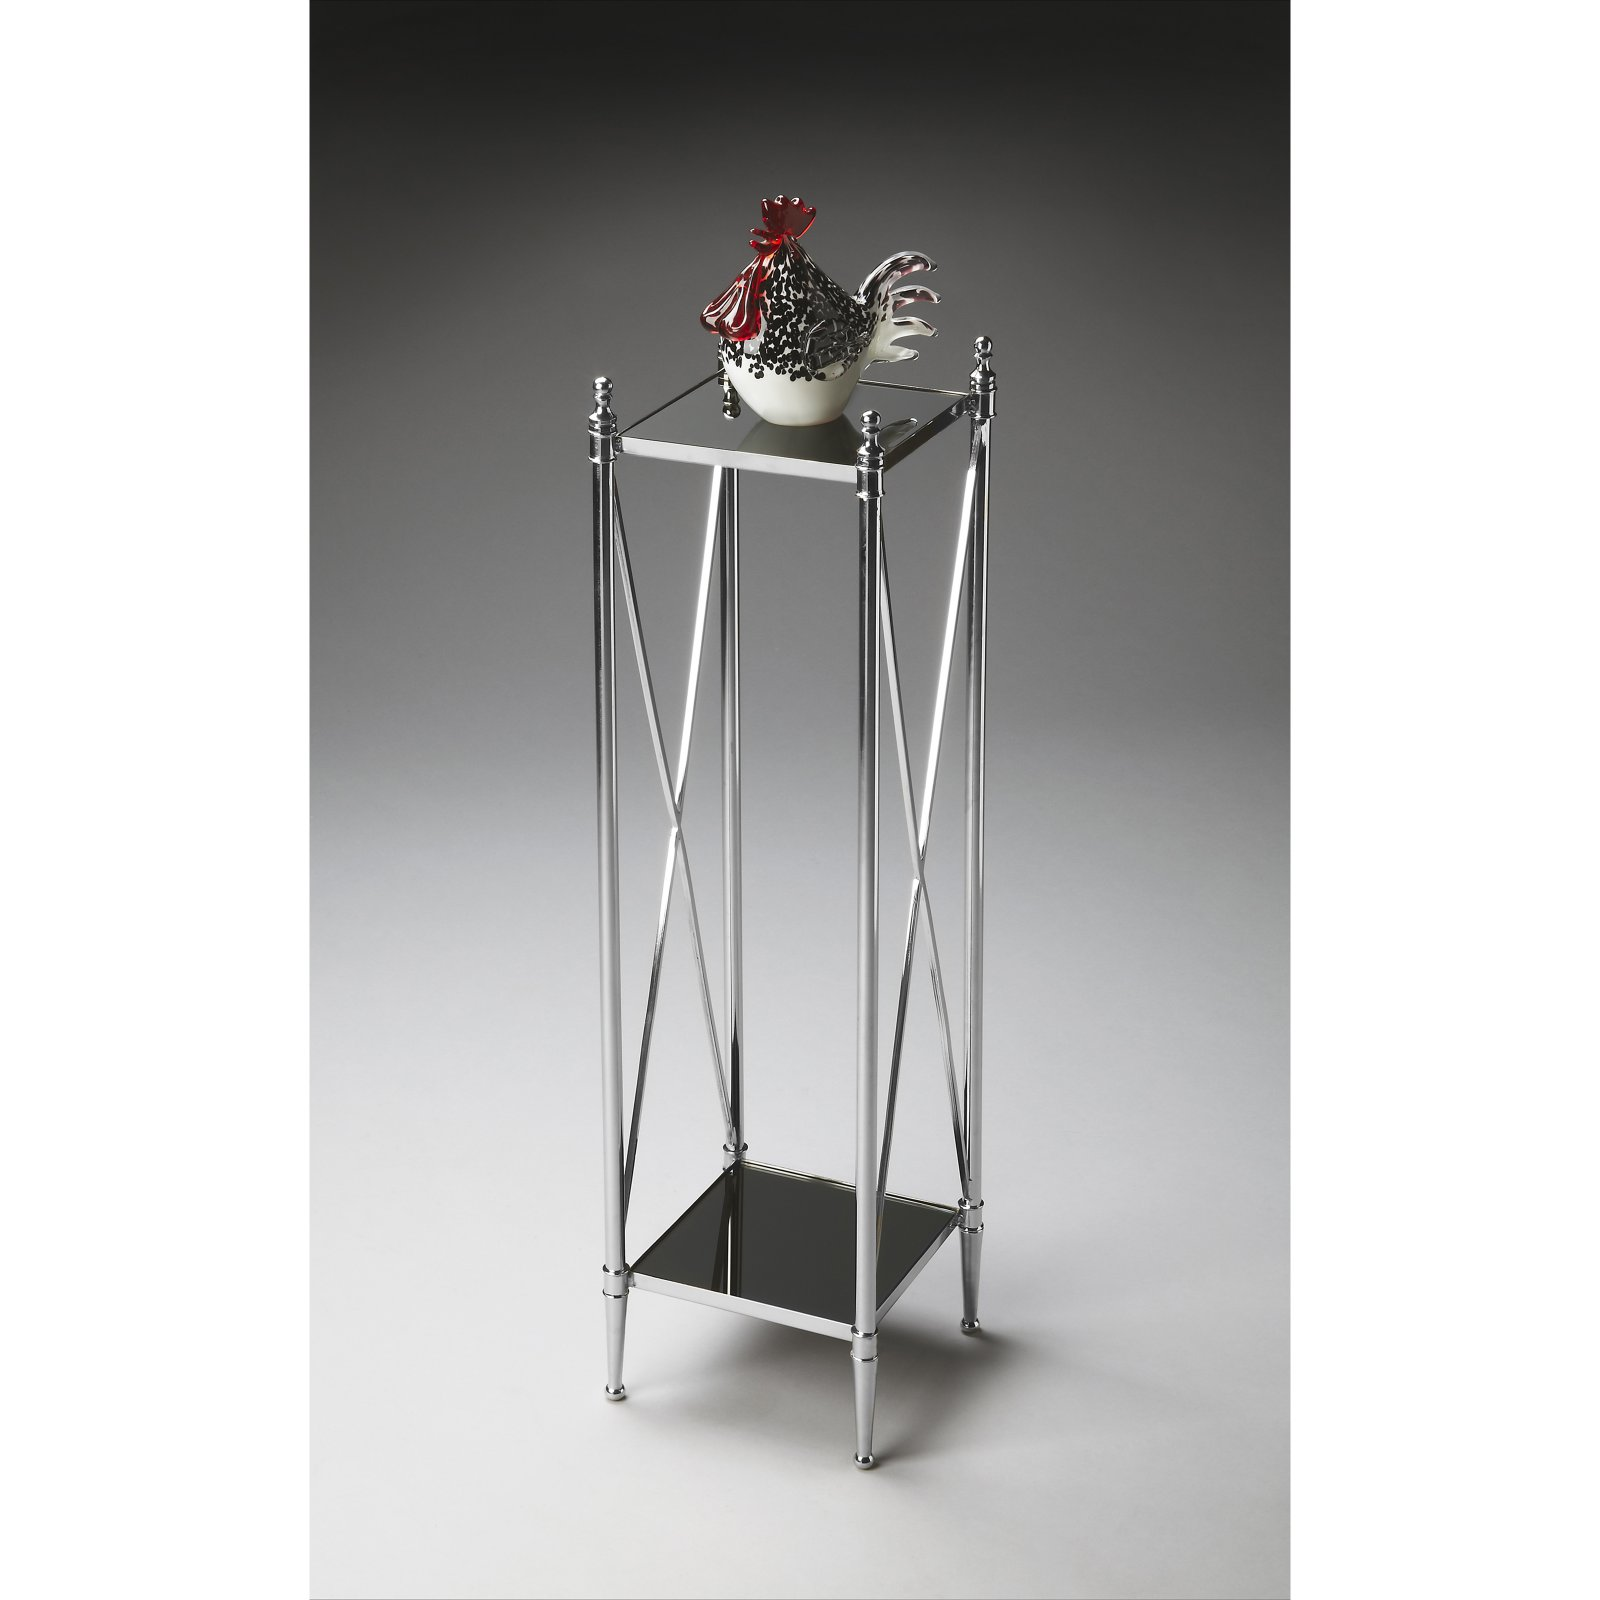 Butler Pedestal Plant Stand Nickel by Plant Stands